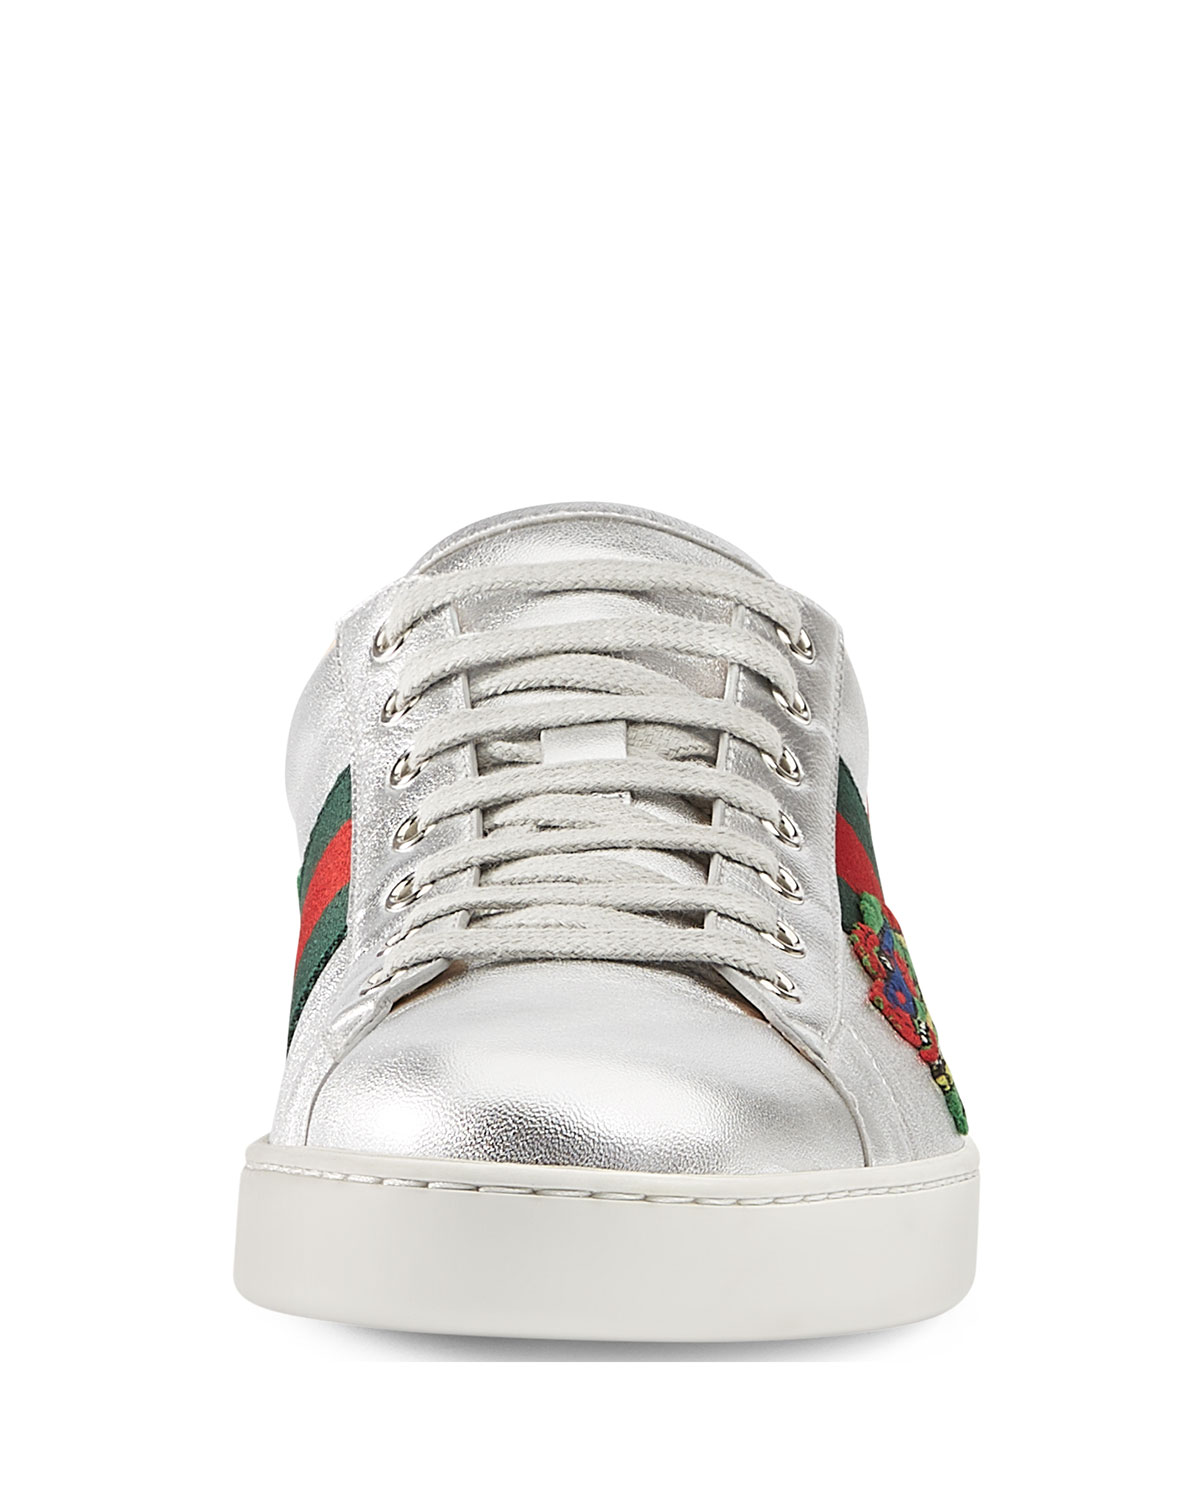 f323a2bb8 Gucci Men's New Ace Embroidered Leather Low-Top Sneakers, Silver | Neiman  Marcus